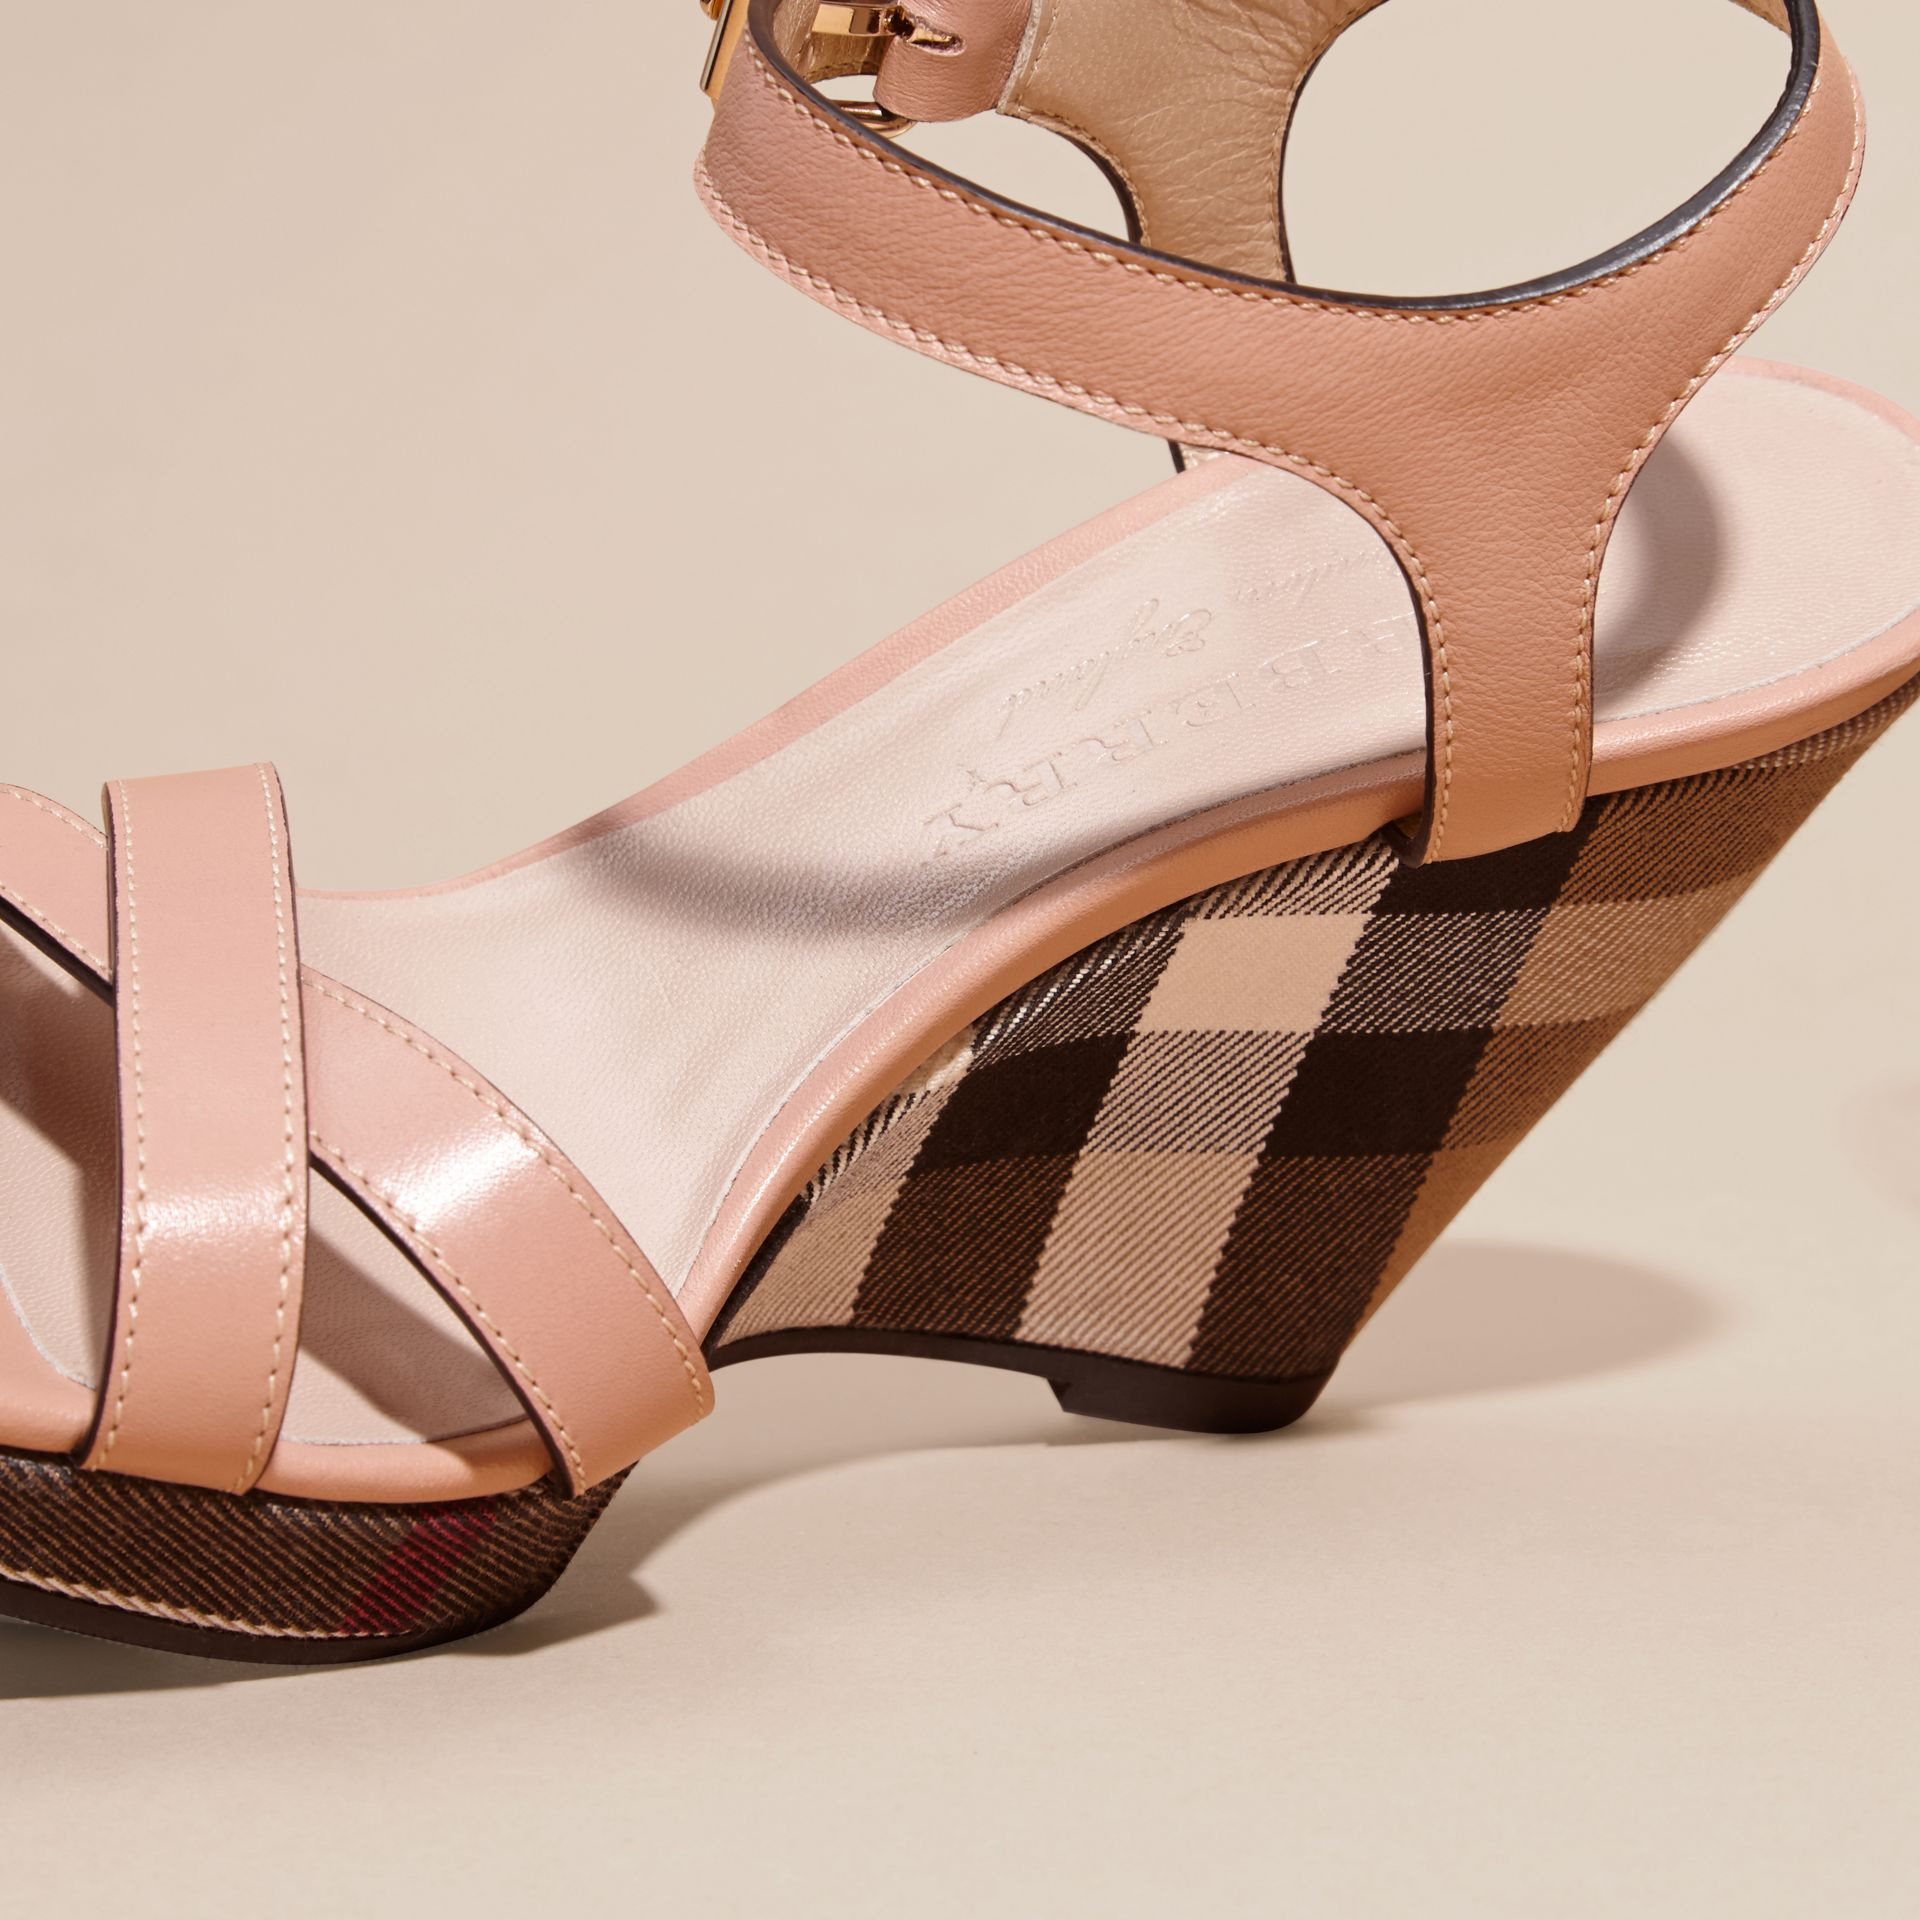 House Check Detail Leather Wedge Sandals in Nude Blush - Women | Burberry Hong Kong - gallery image 5